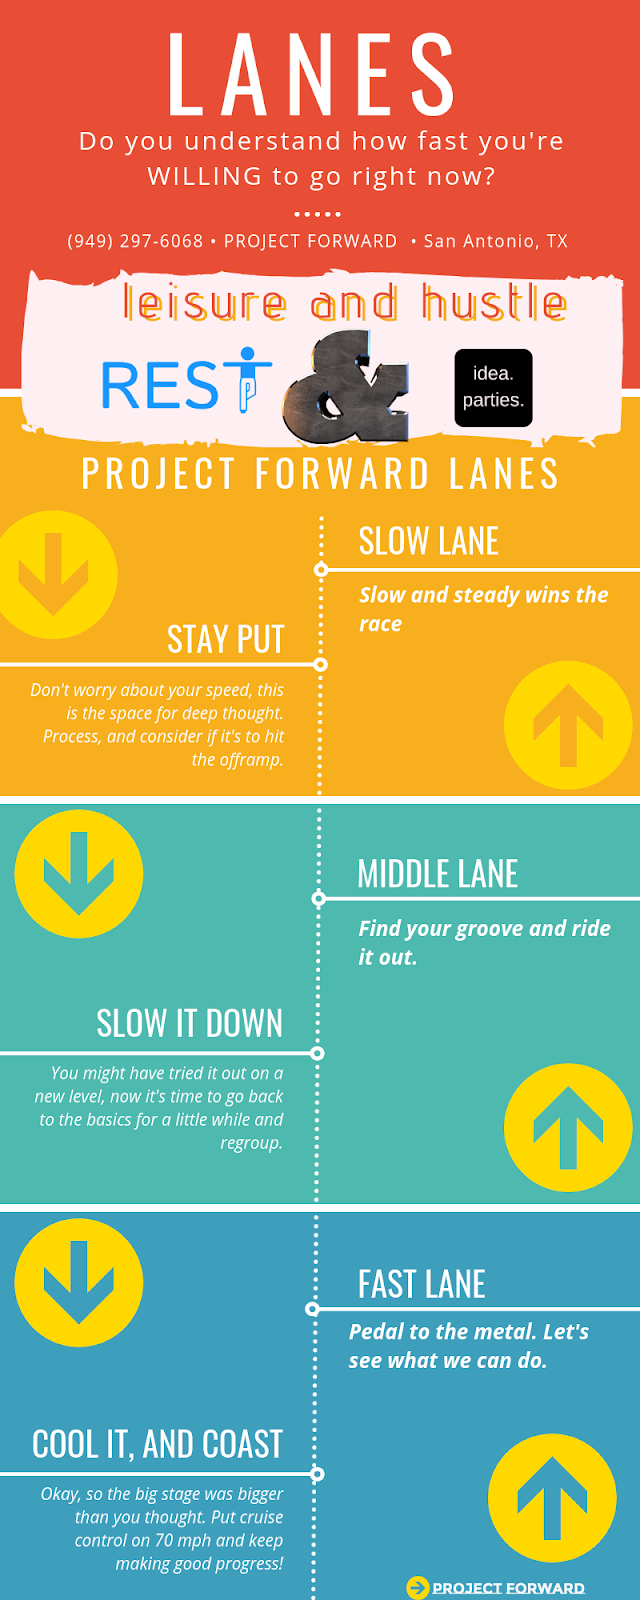 Project Forward Lanes - How Fast Do You Want to Move